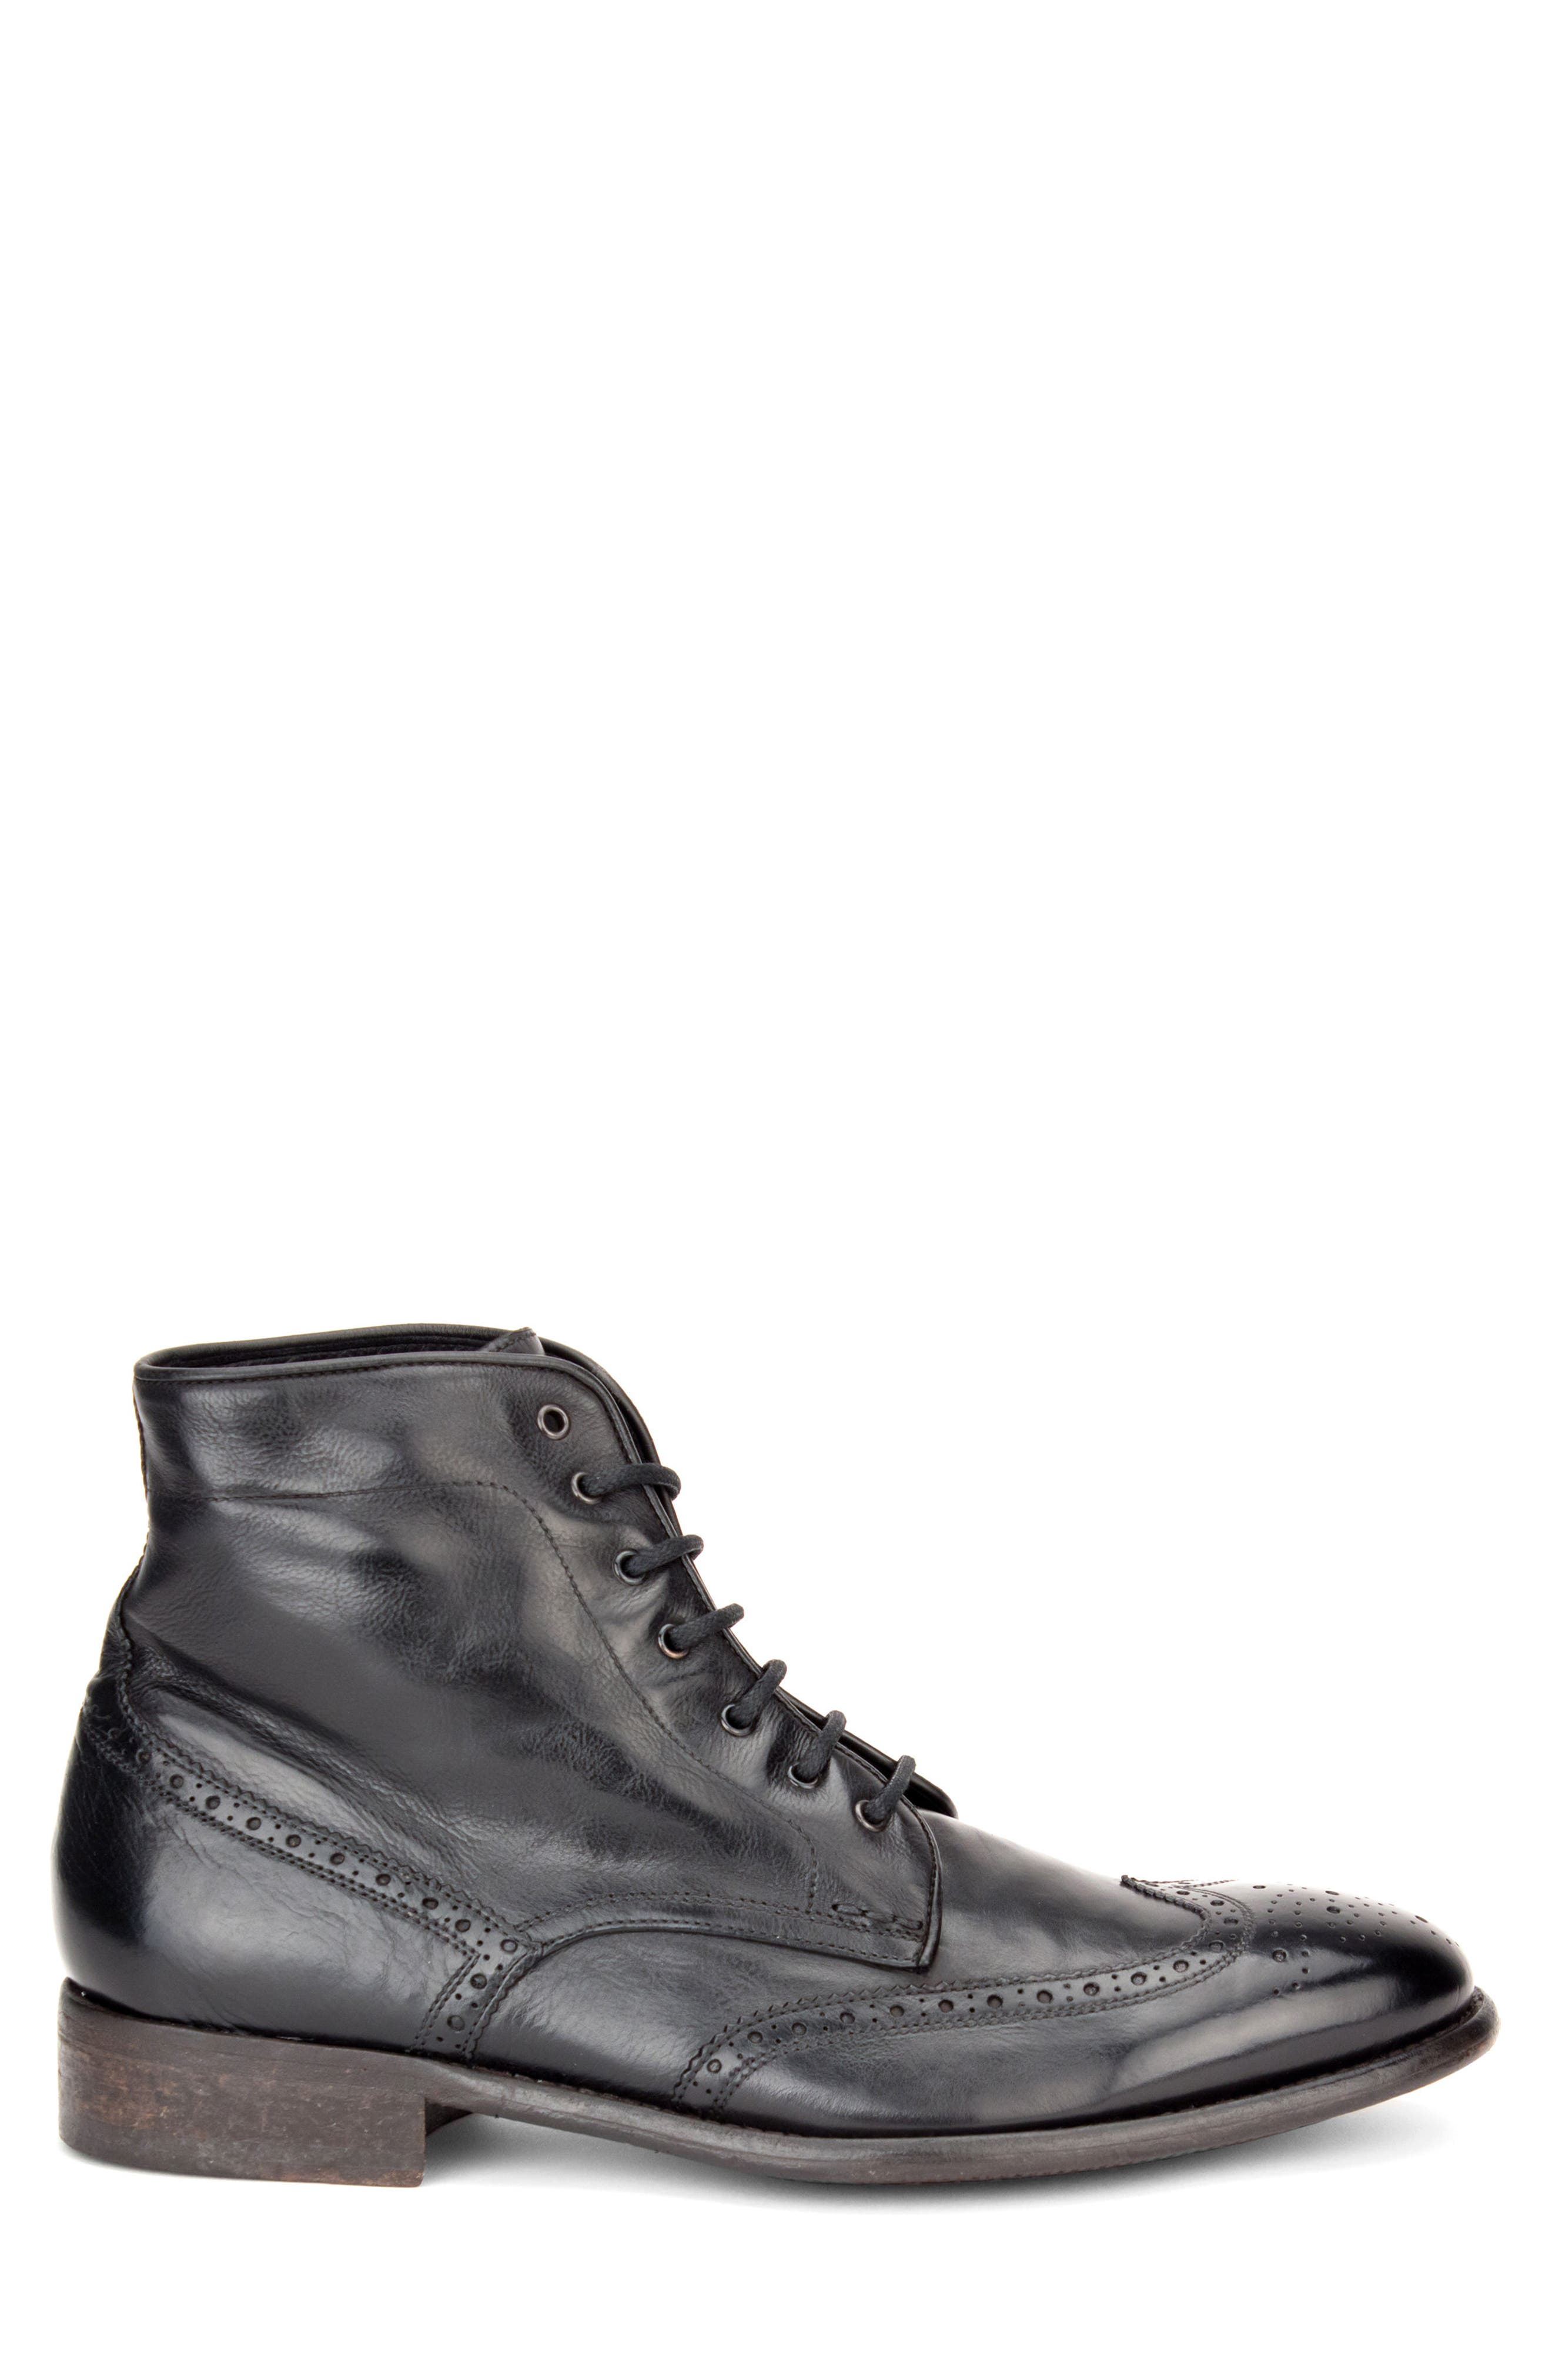 Maxfield Wingtip Boot,                             Alternate thumbnail 3, color,                             BLACK LEATHER